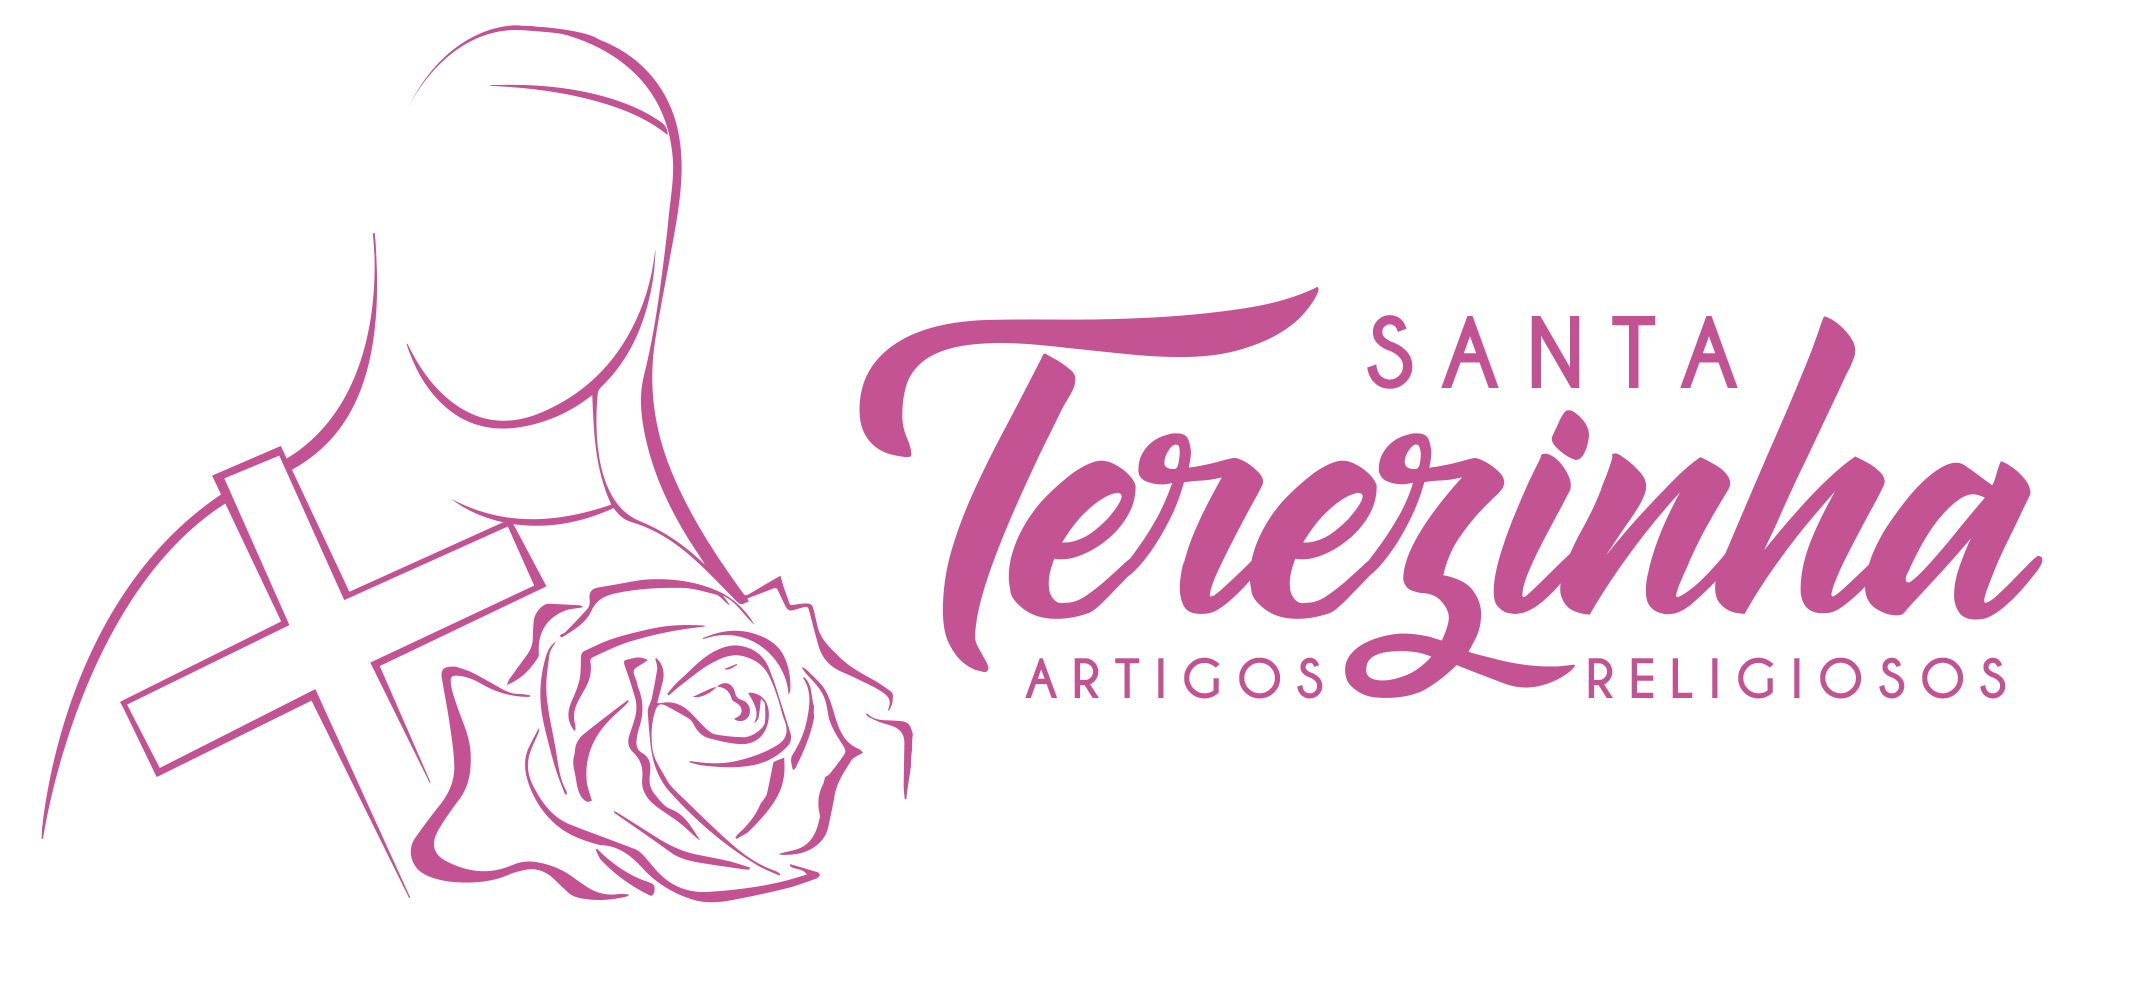 Santa Terezinha - Artigos Religiosos